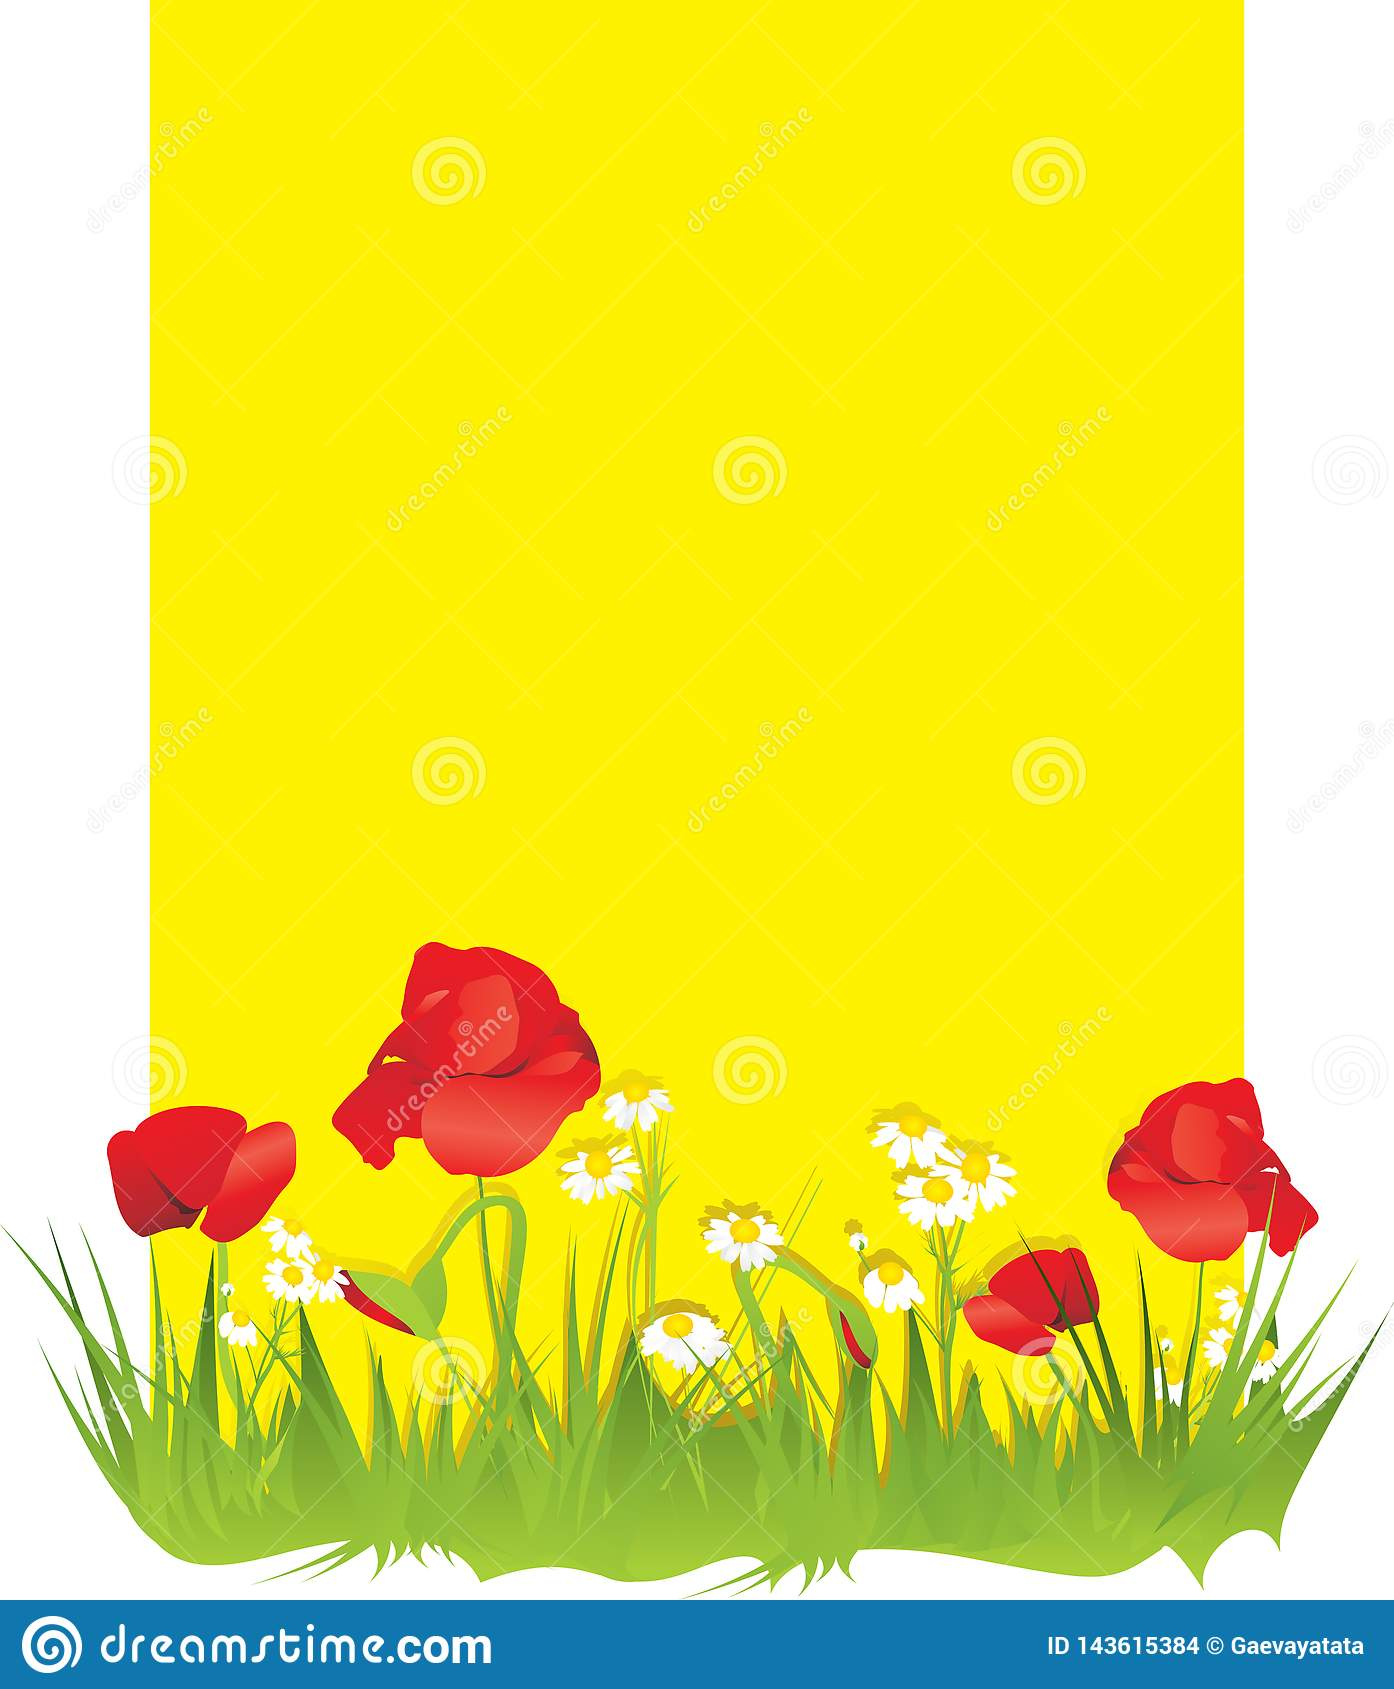 Daisies and poppies on a yellow background